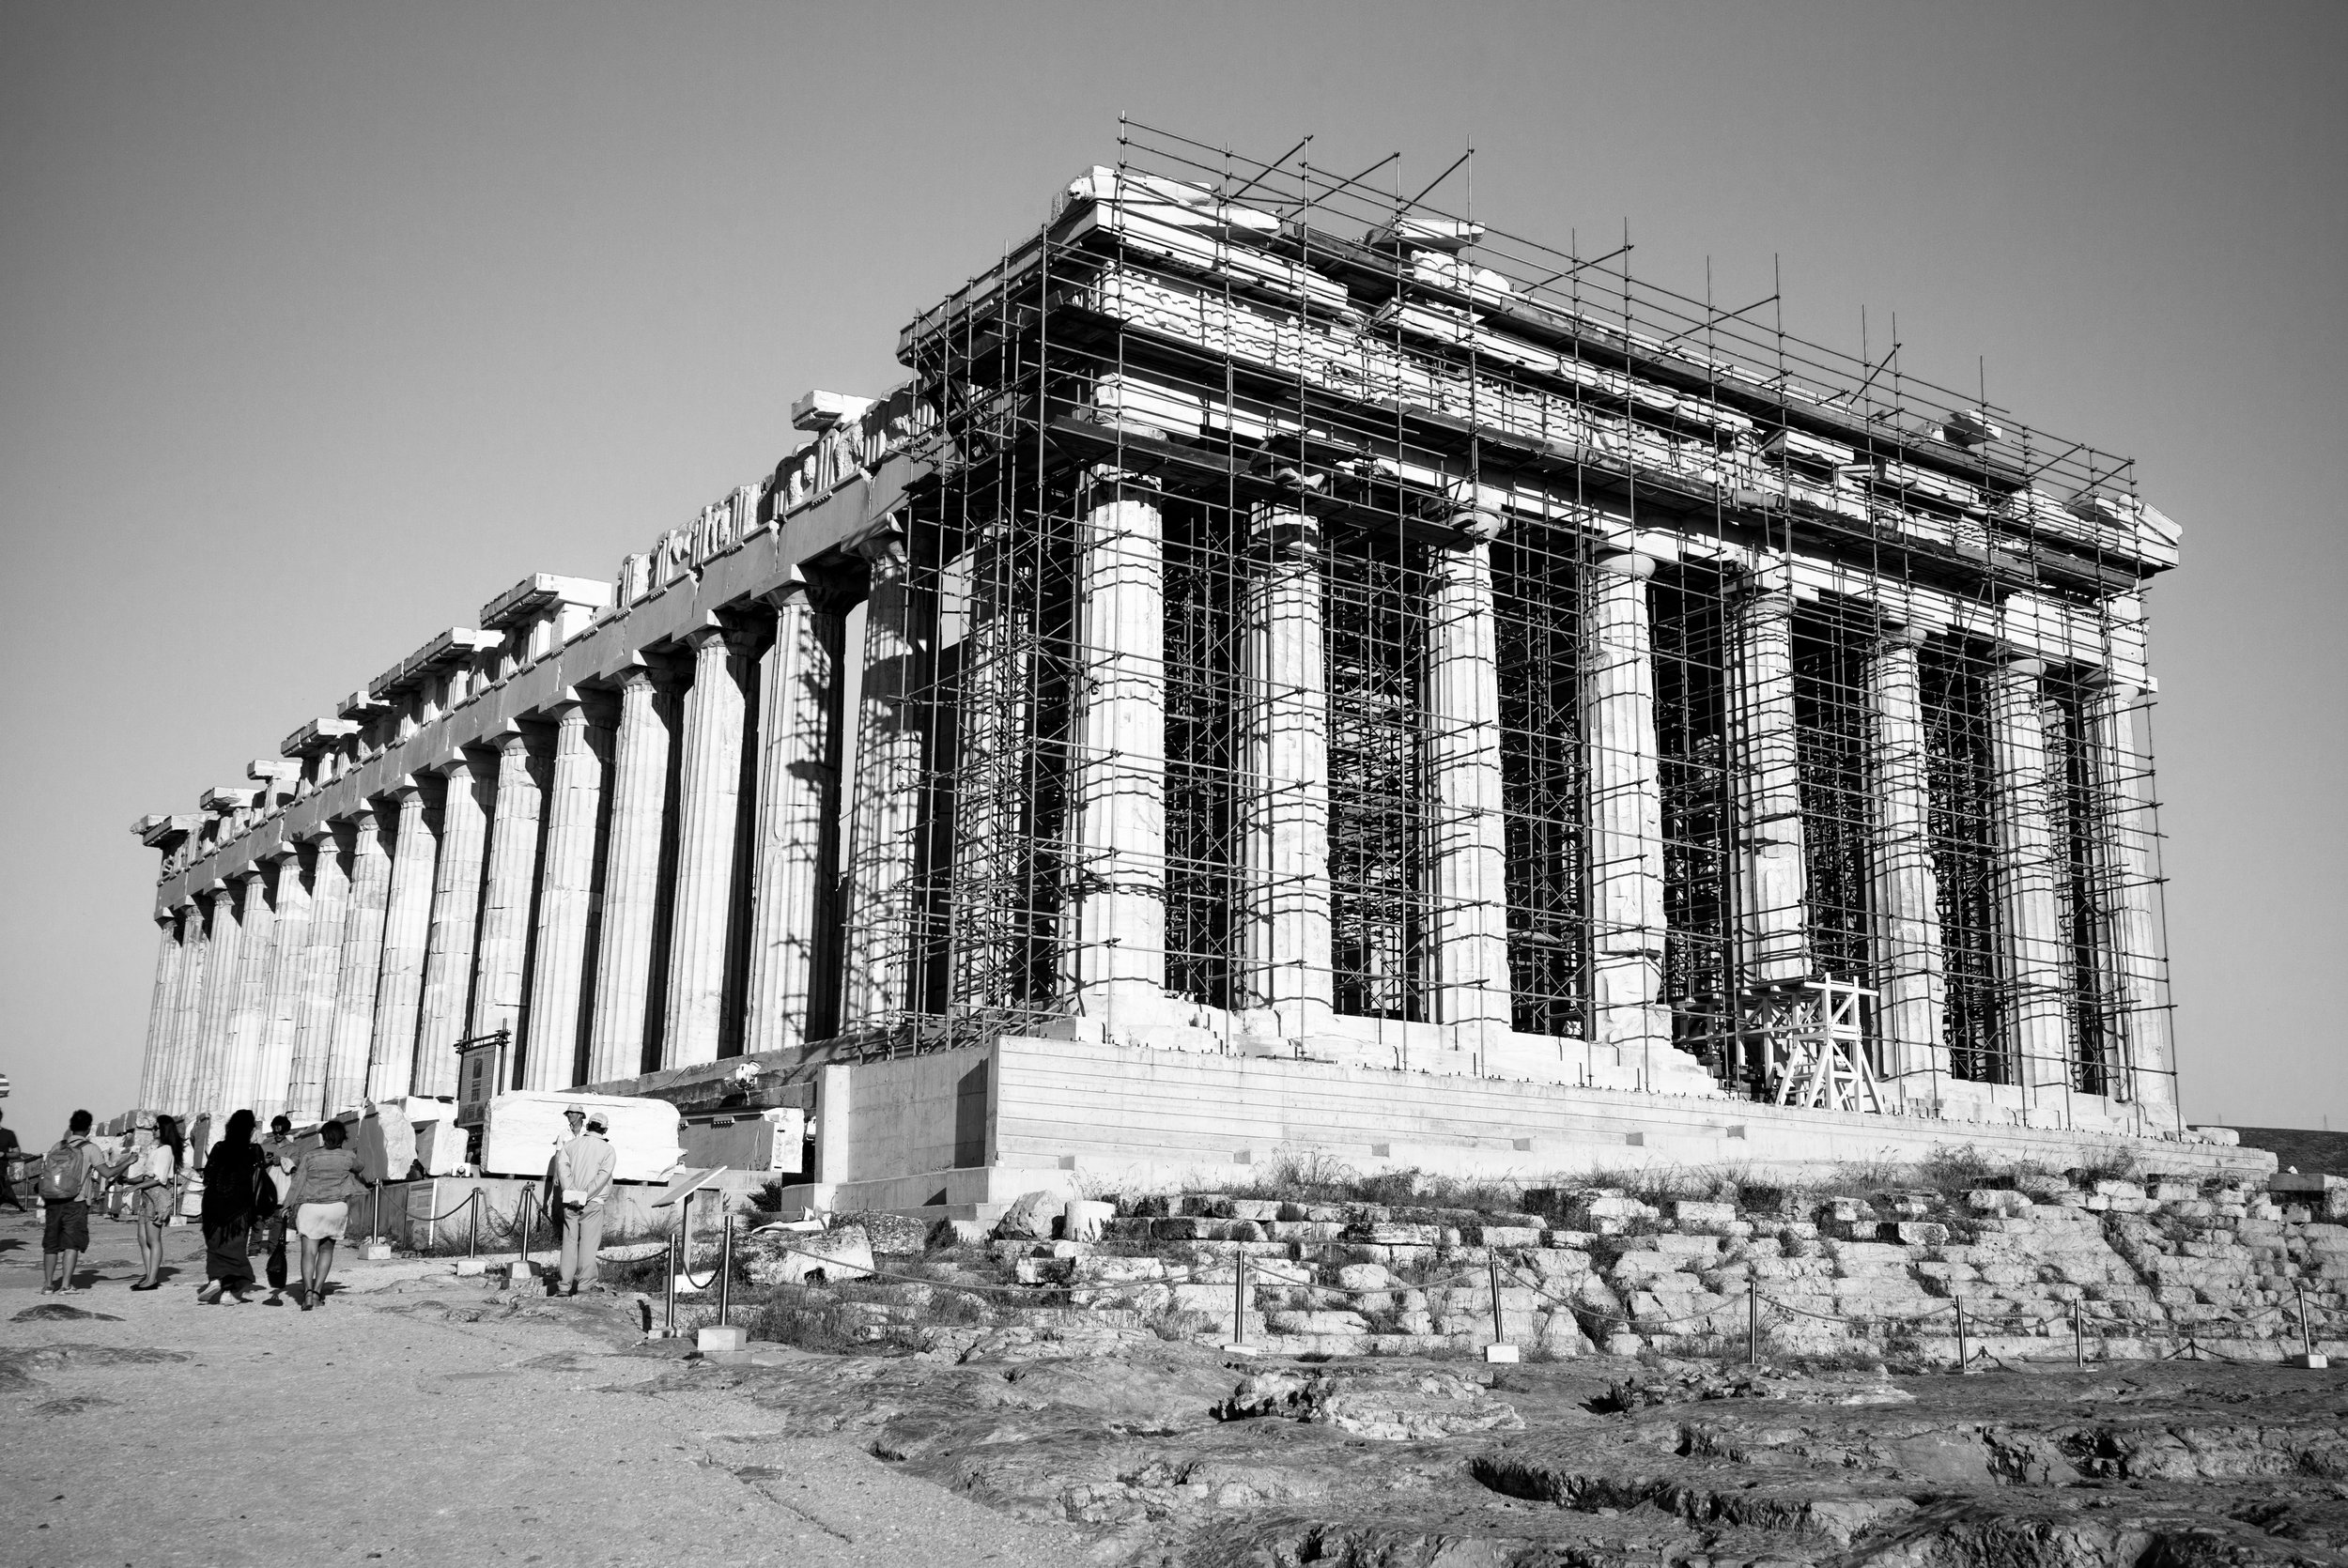 Parthenon, Athens. Greece. 2018.